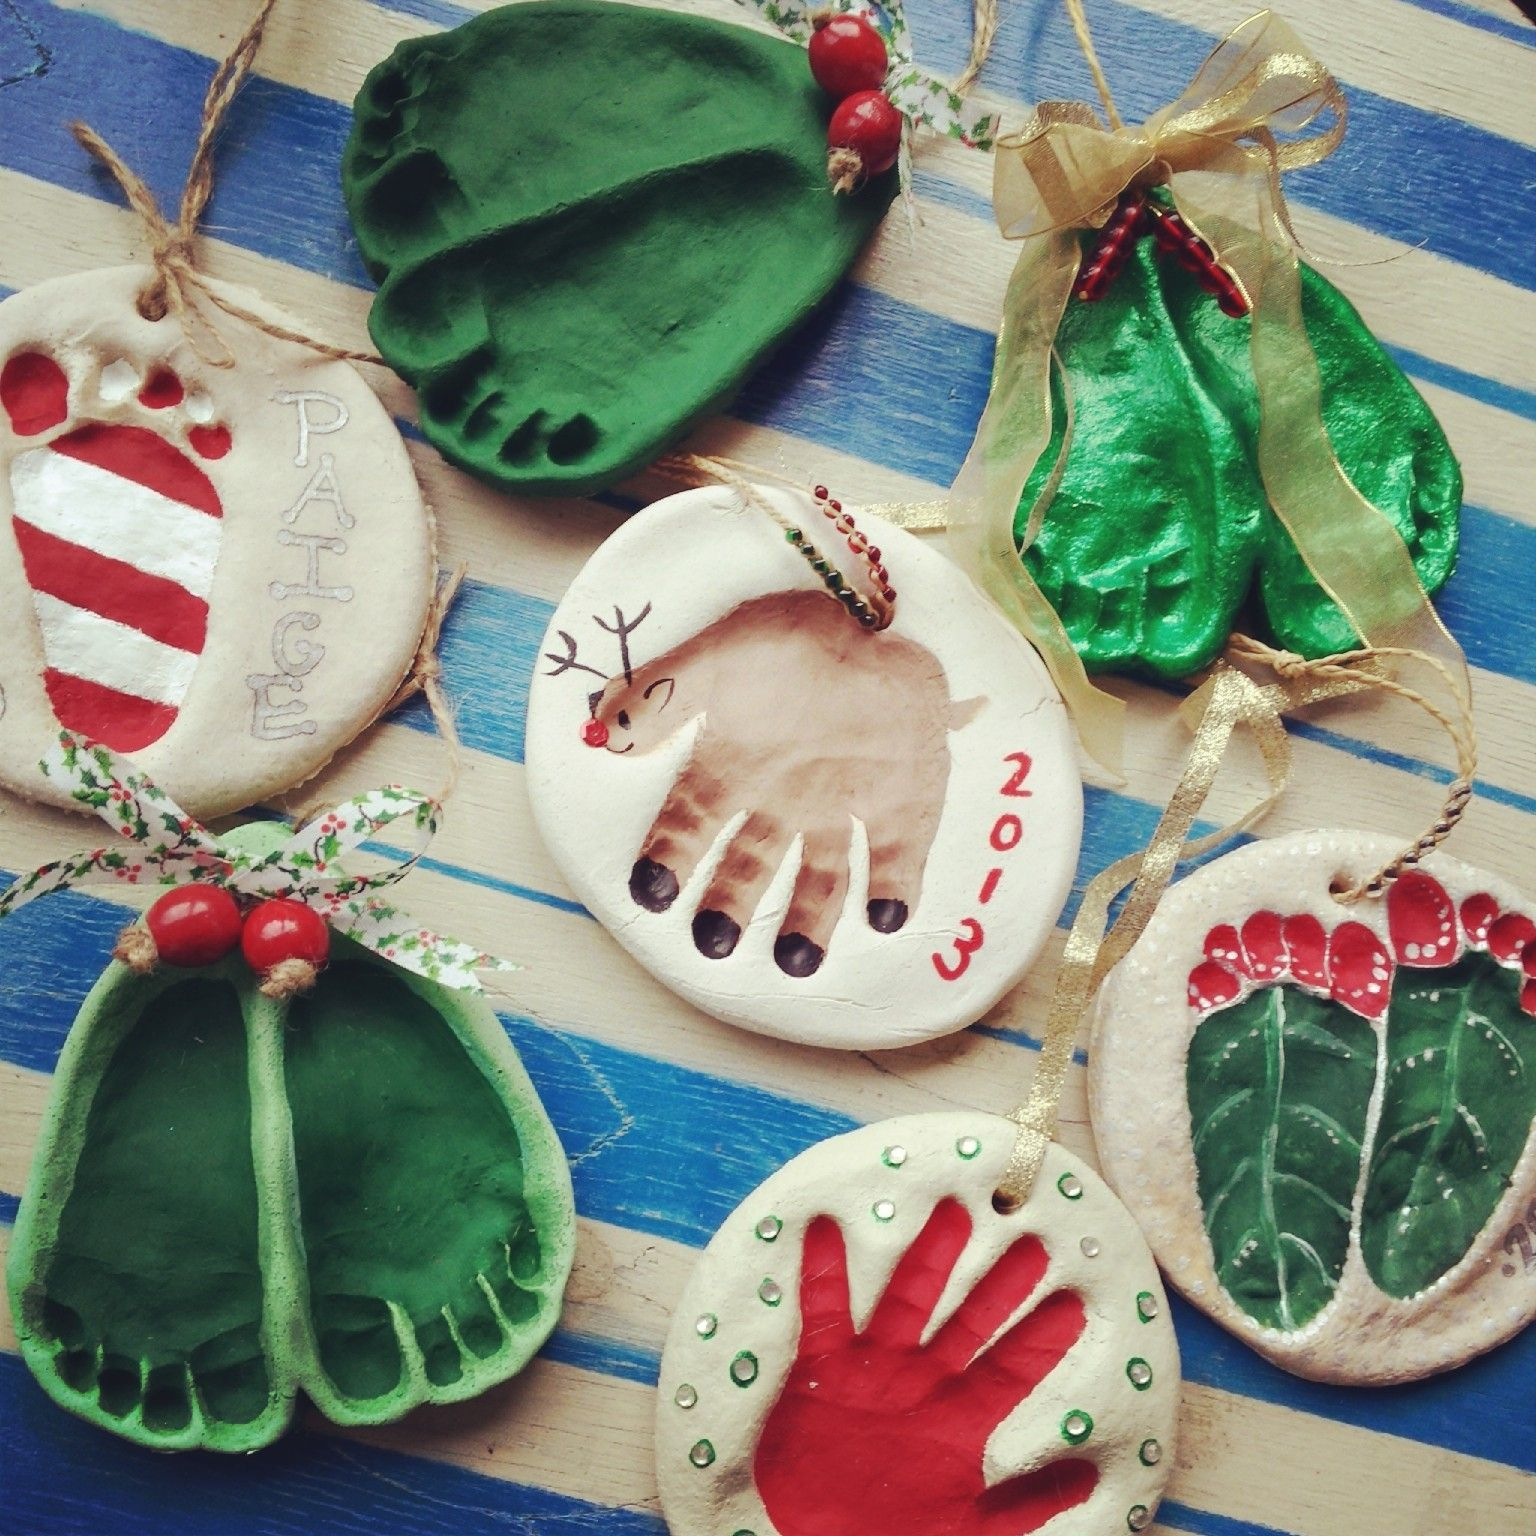 Salt Dough Ornaments We Made Today With Paige S Footprints And Handprints Christ Christmas Crafts Christmas Crafts For Kids Handmade Christmas Decorations